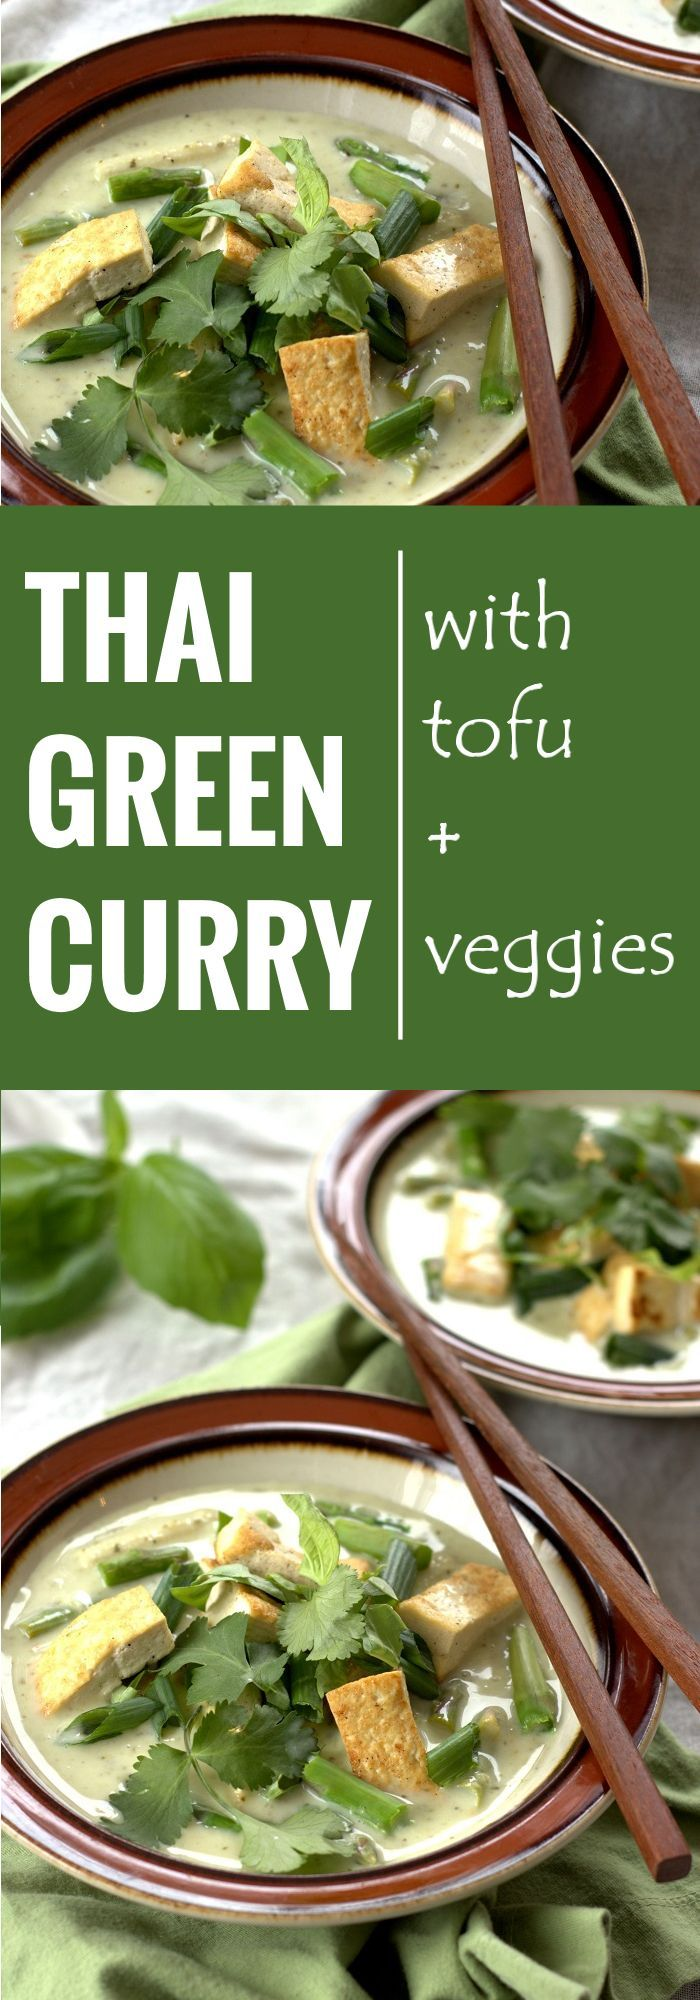 This flavorful Thai vegan green curry is made with a seasoned coconut milk base, tofu, fresh veggies, and topped with fresh basil, cilantro and scallions.